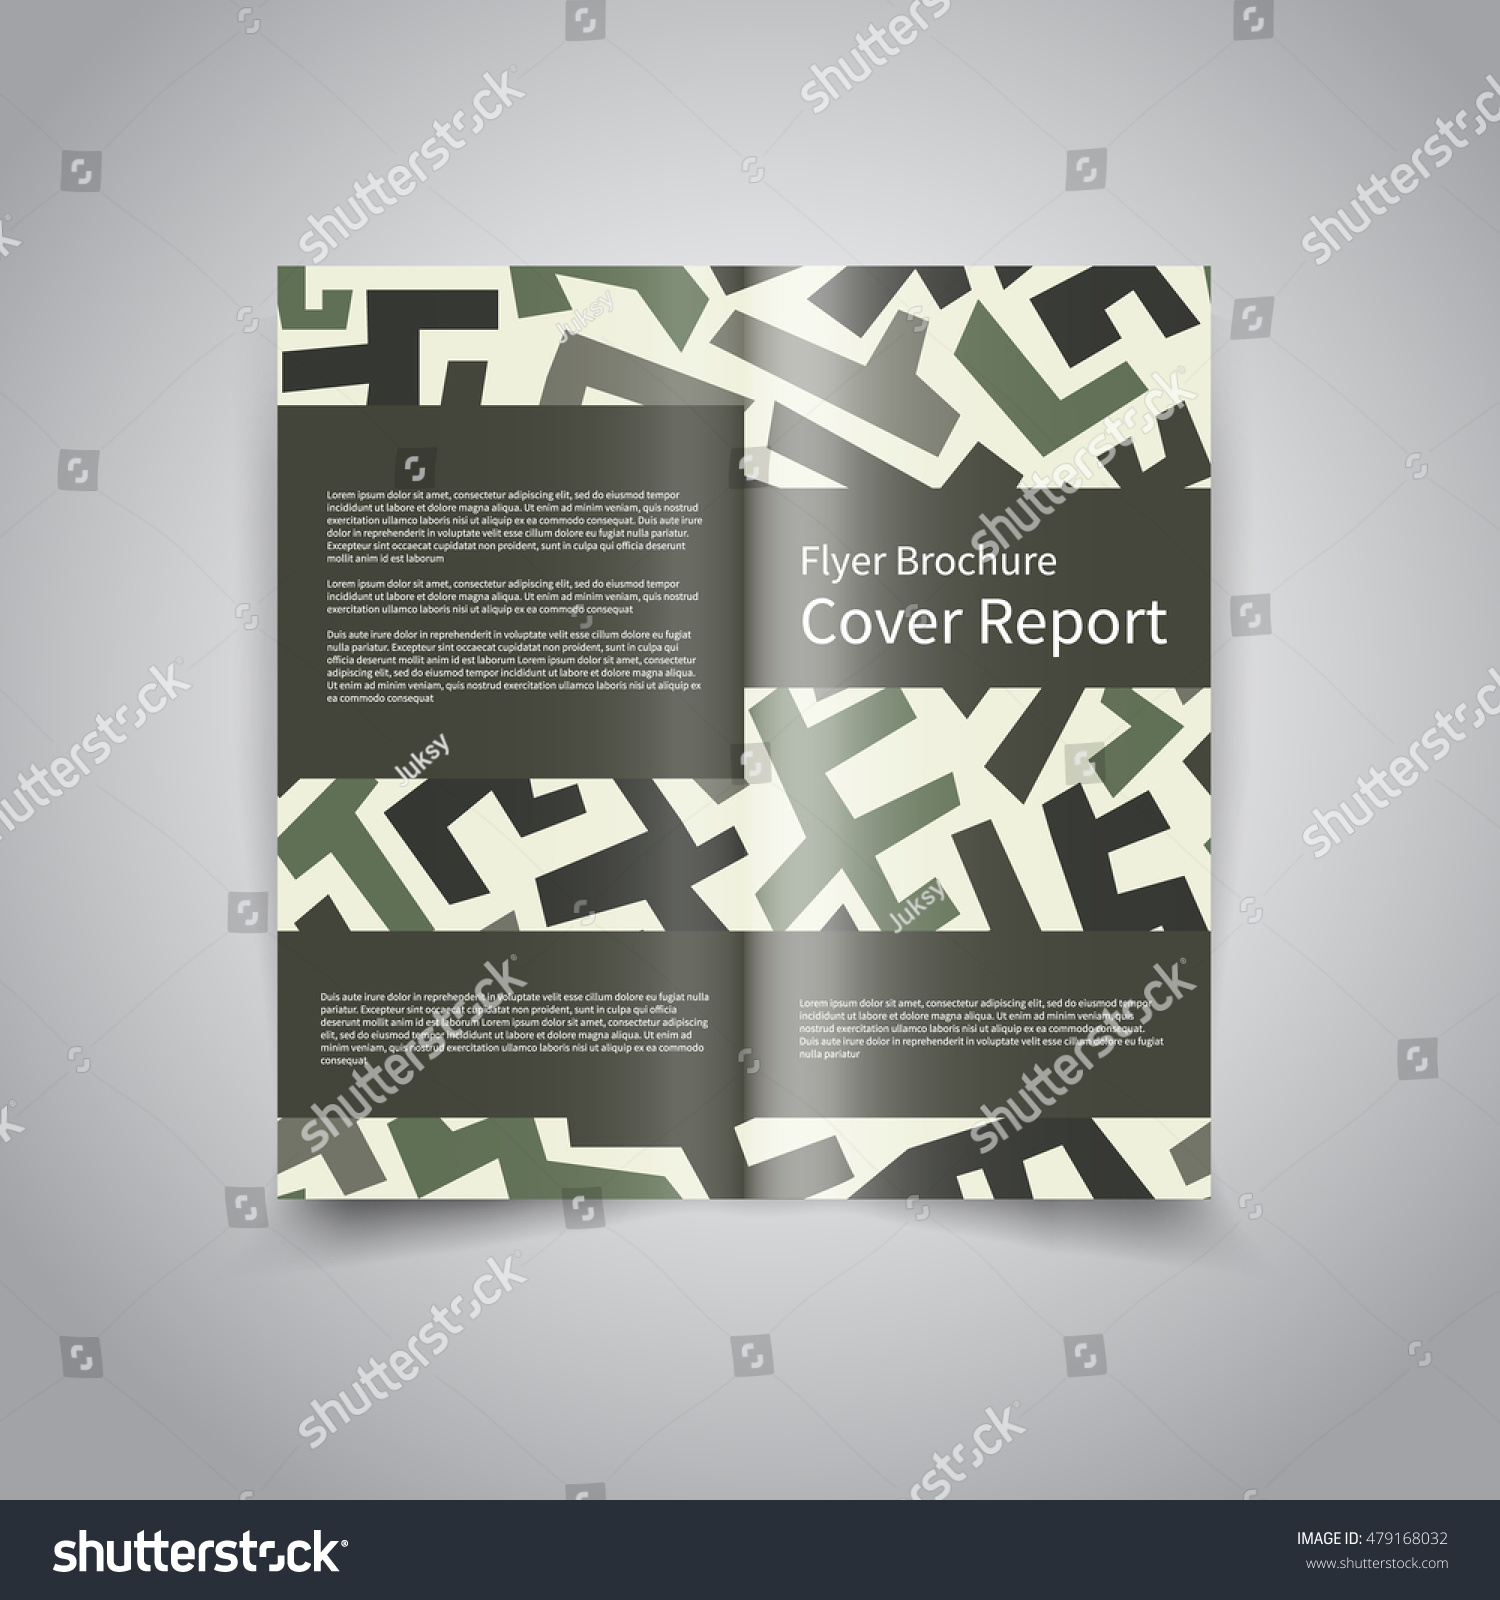 Vector two fold brochure design template stock vector for Two fold brochure design